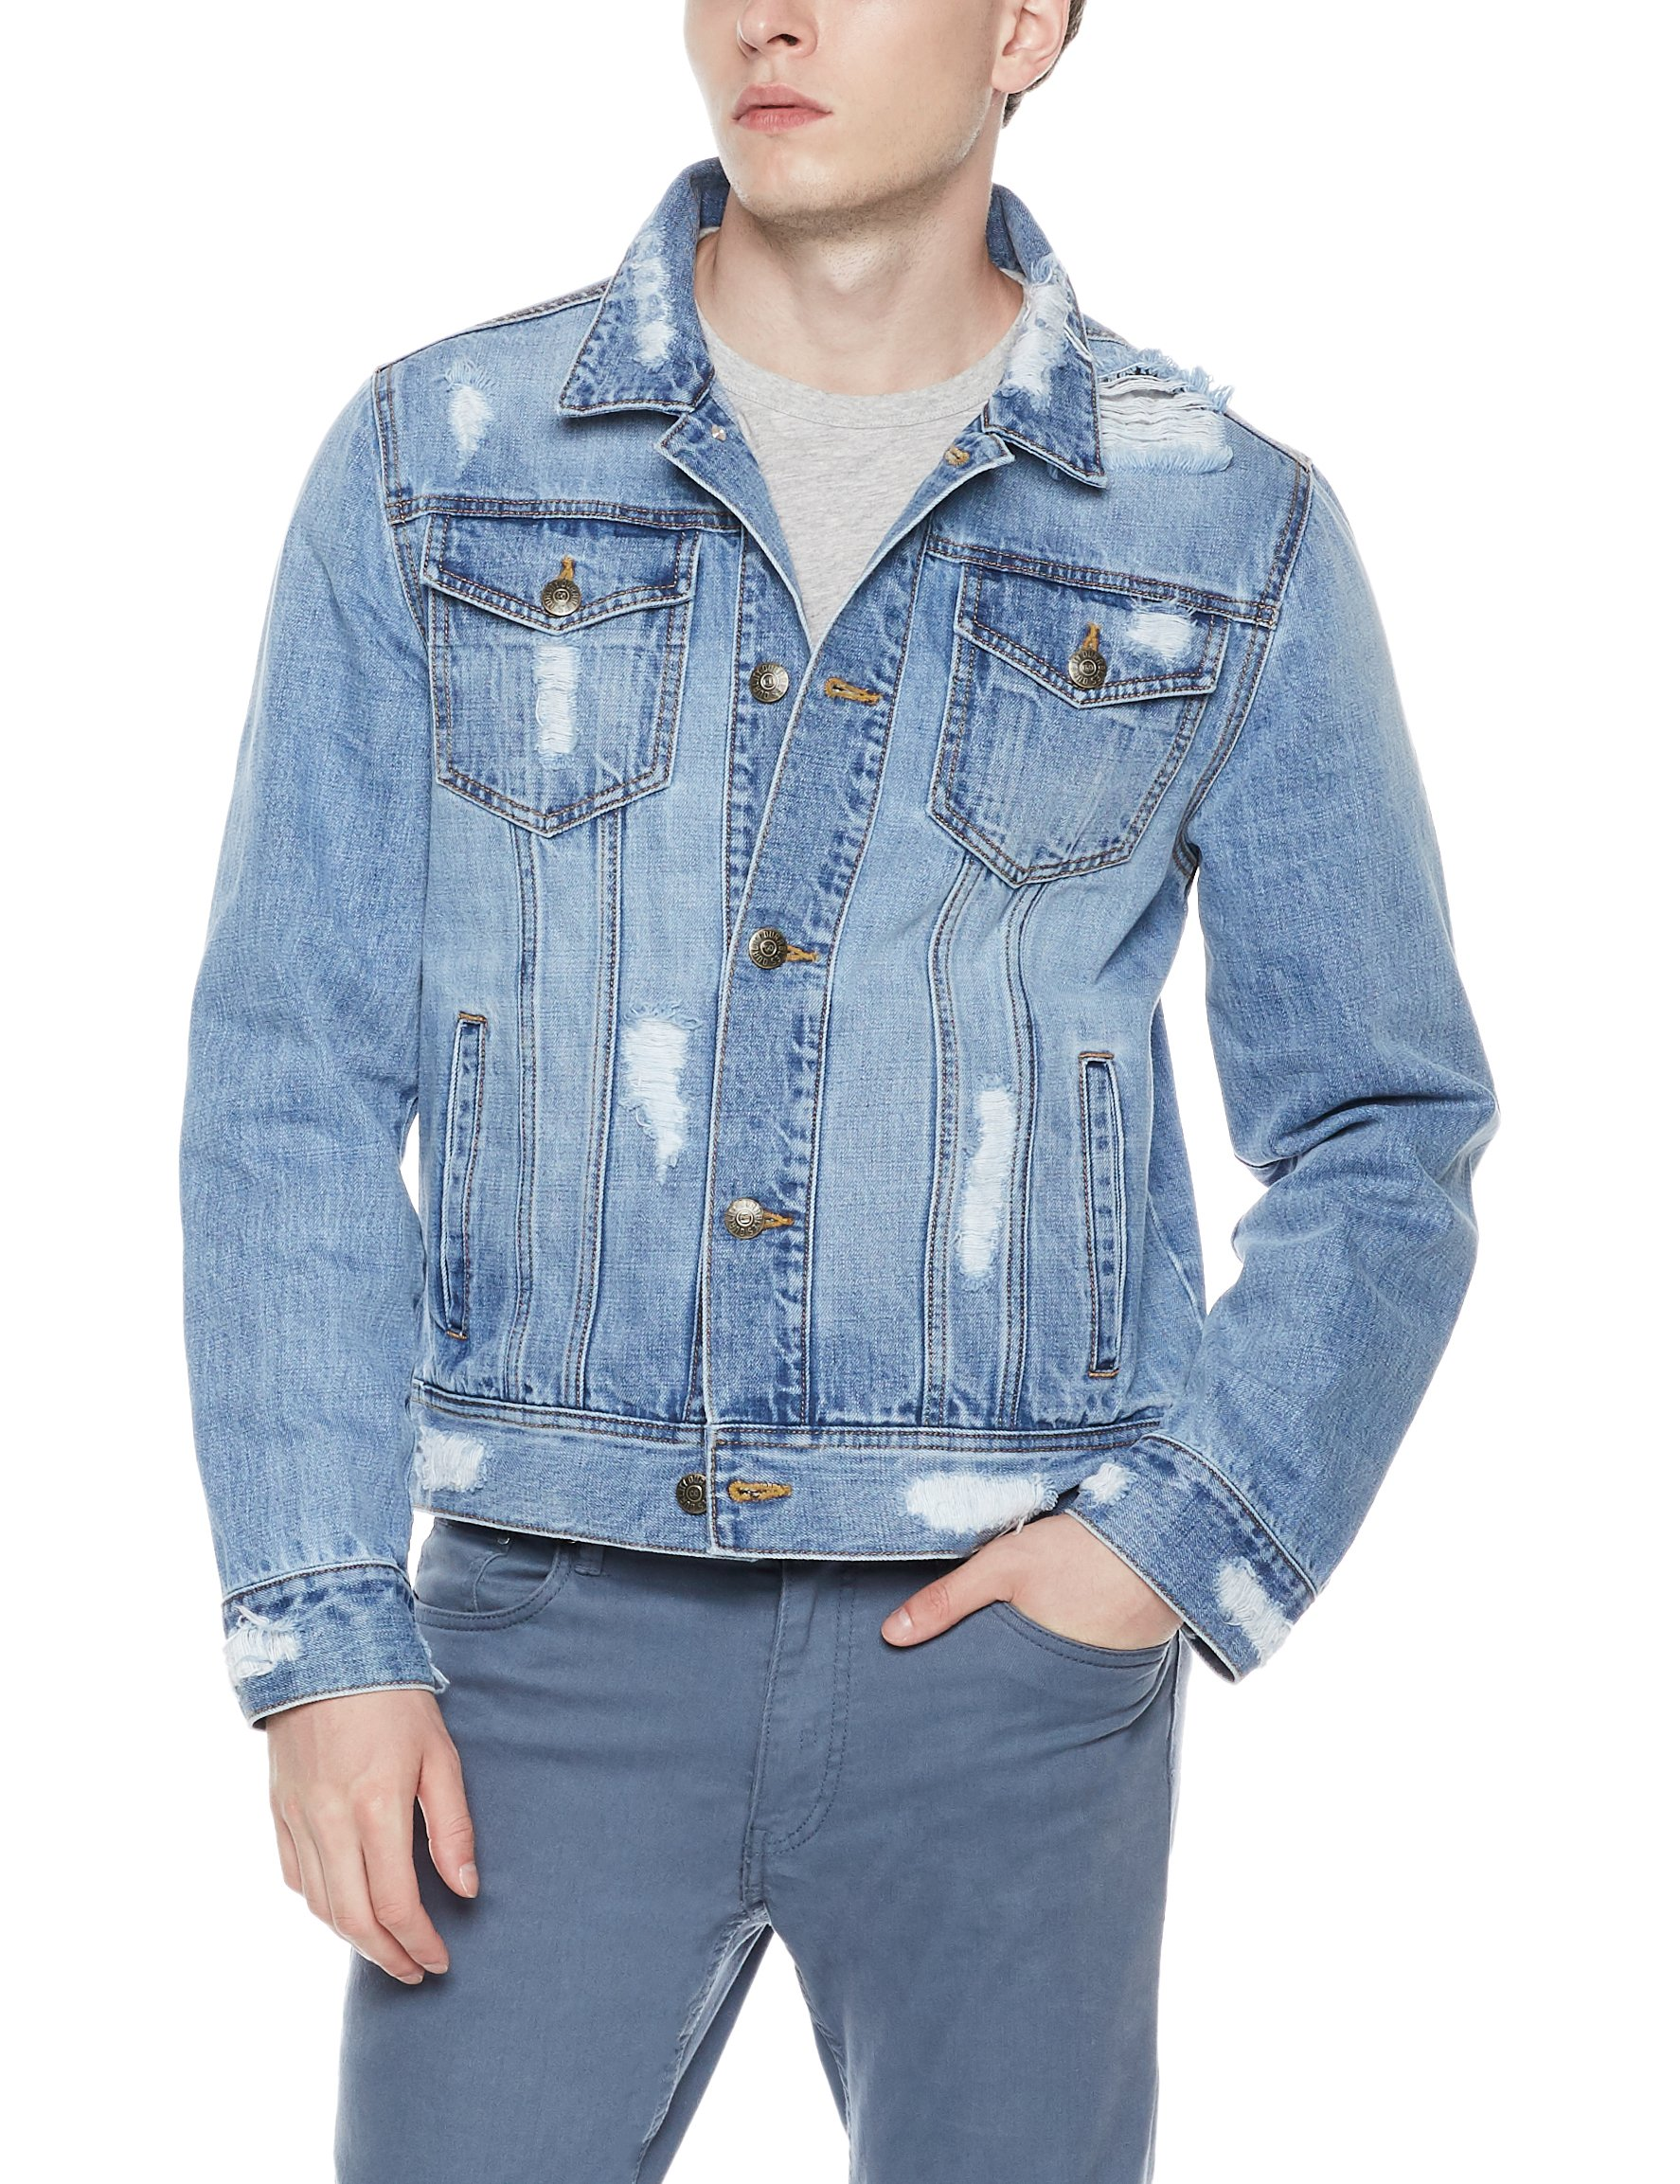 Quality Durables Co. Men's Regular-Fit Distressed Jean Jacket S